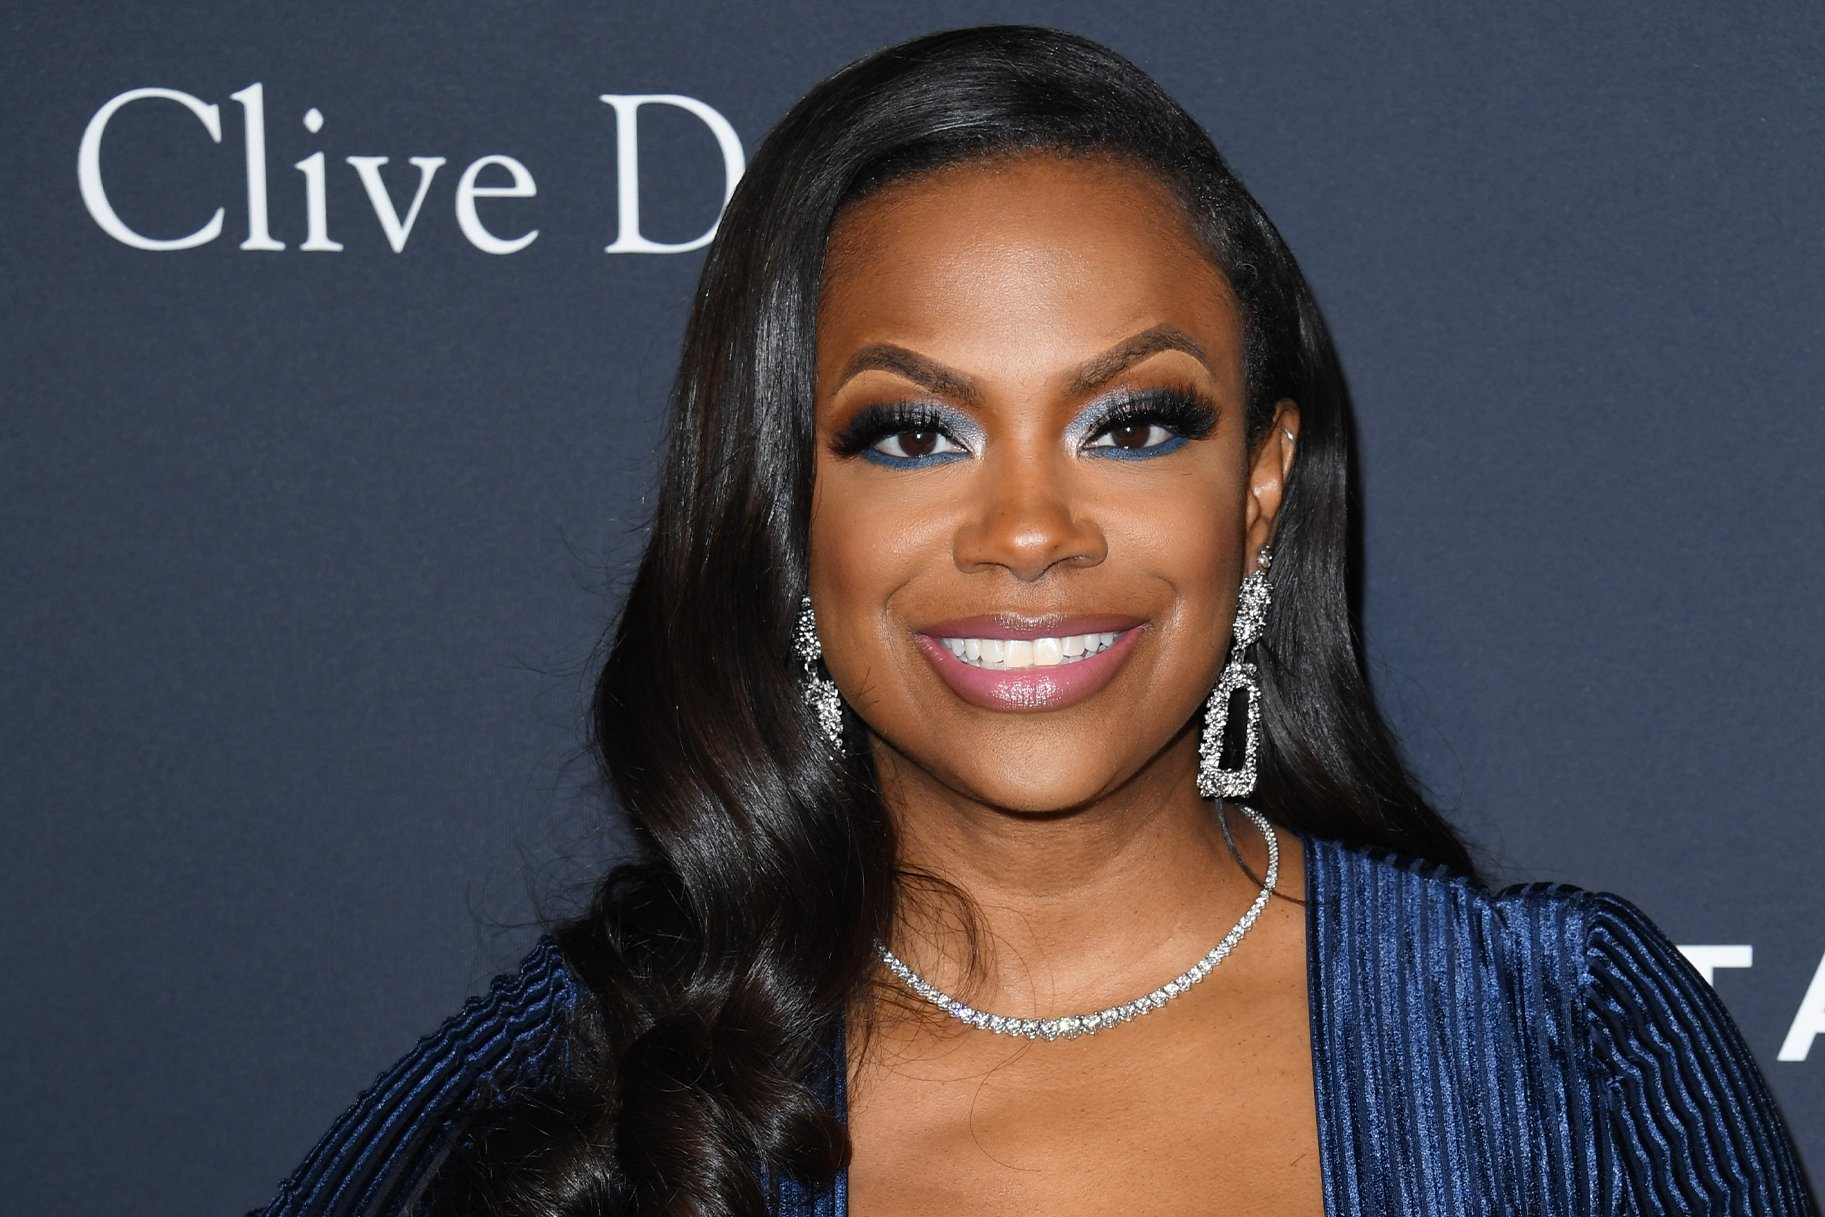 Kandi Burruss Looks Gorgeous In Her Latest Photo – See It Here